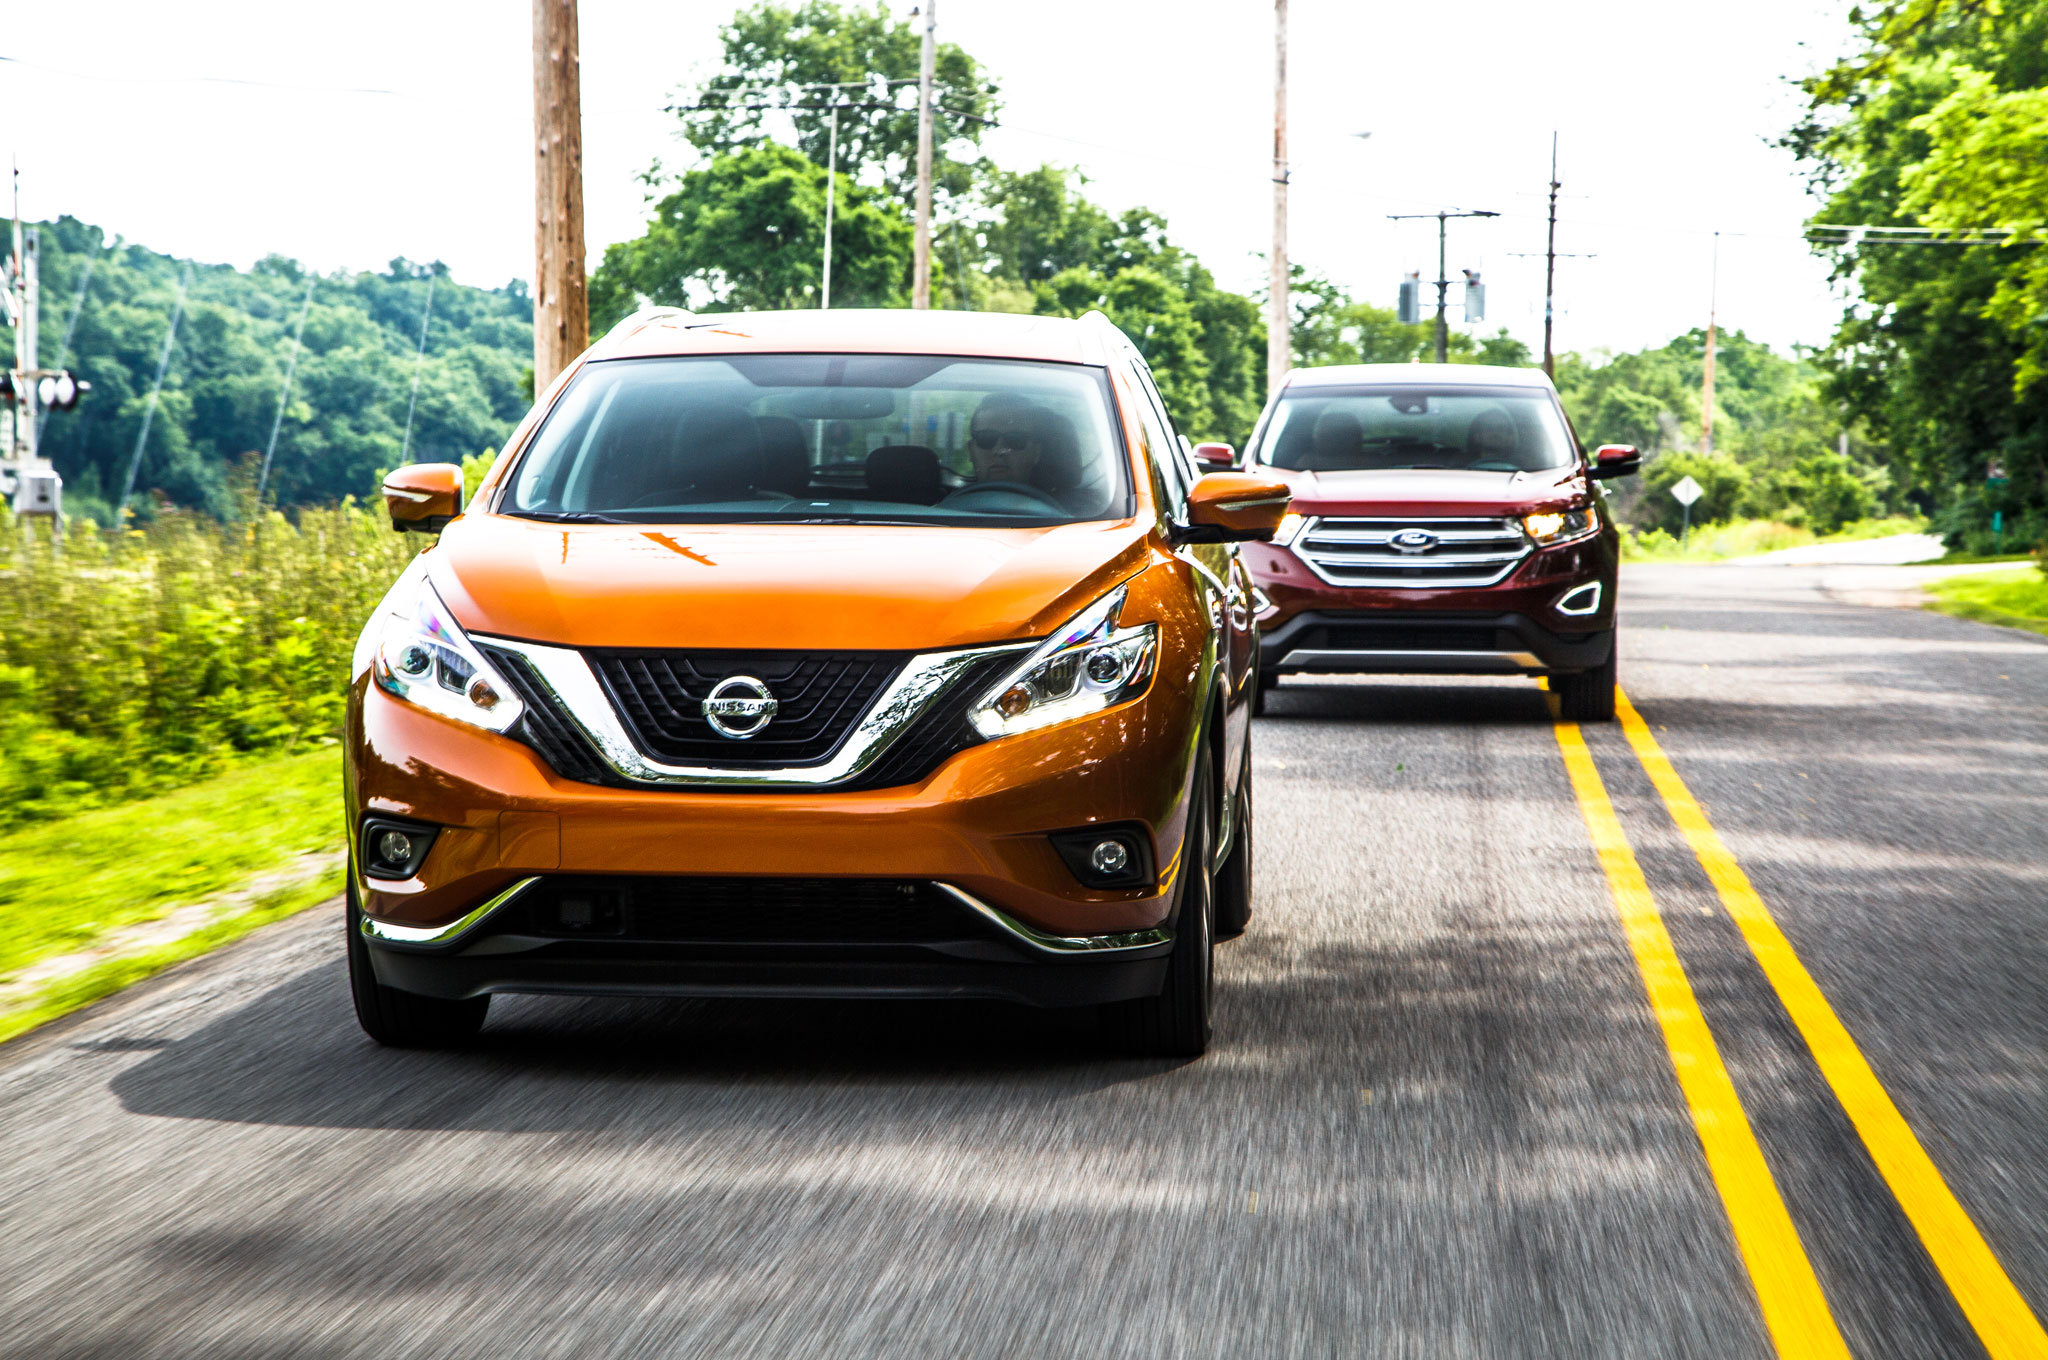 2015 Nissan Murano Vs 2015 Ford Edge Comparison 18